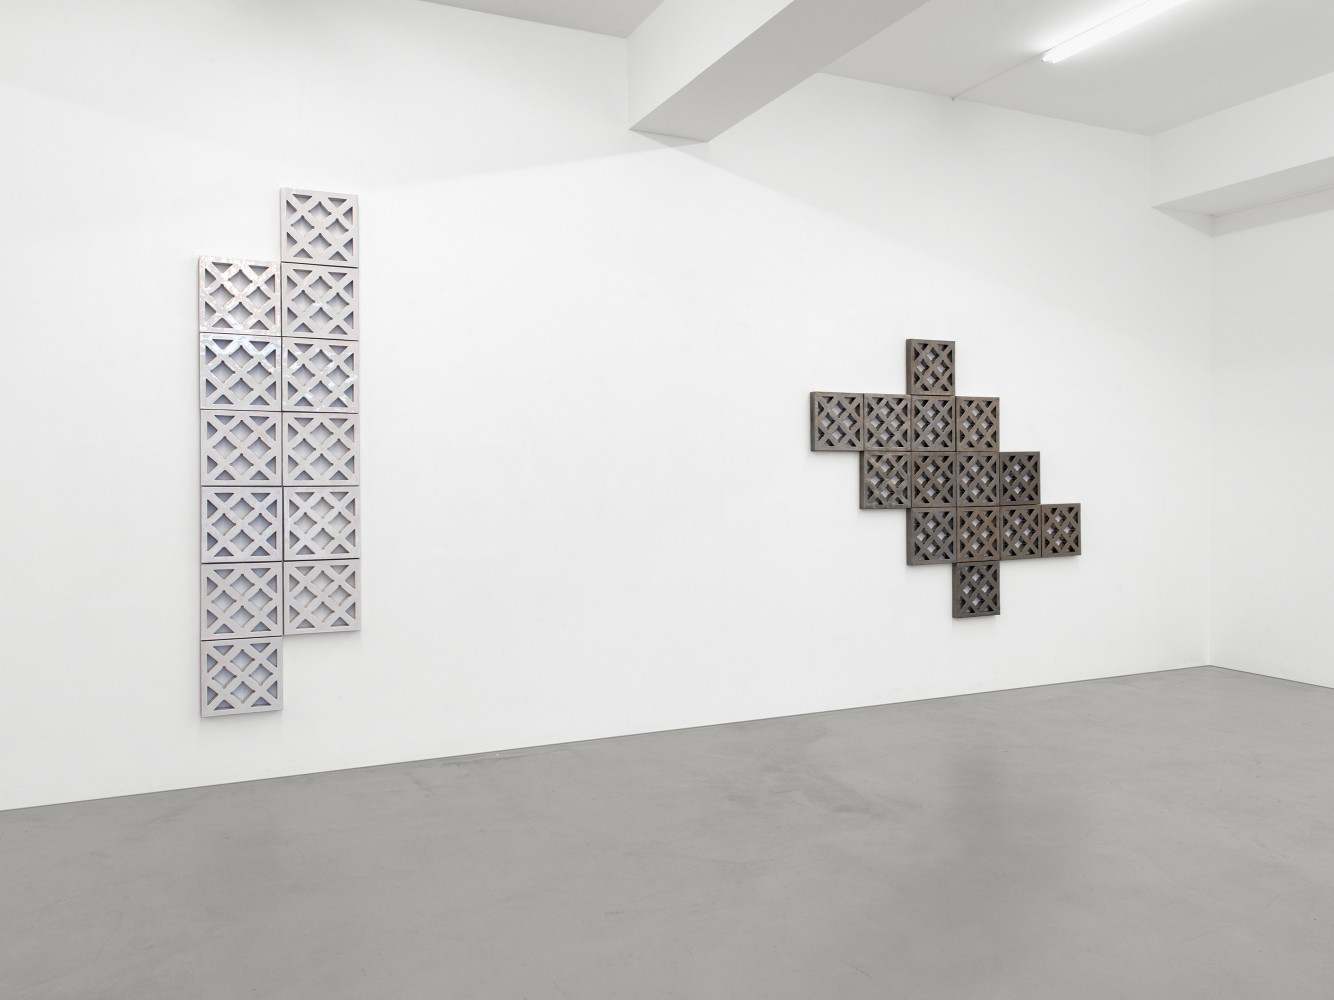 Bettina Pousttchi, 'Ceramics', Installation view, Buchmann Galerie, 2016